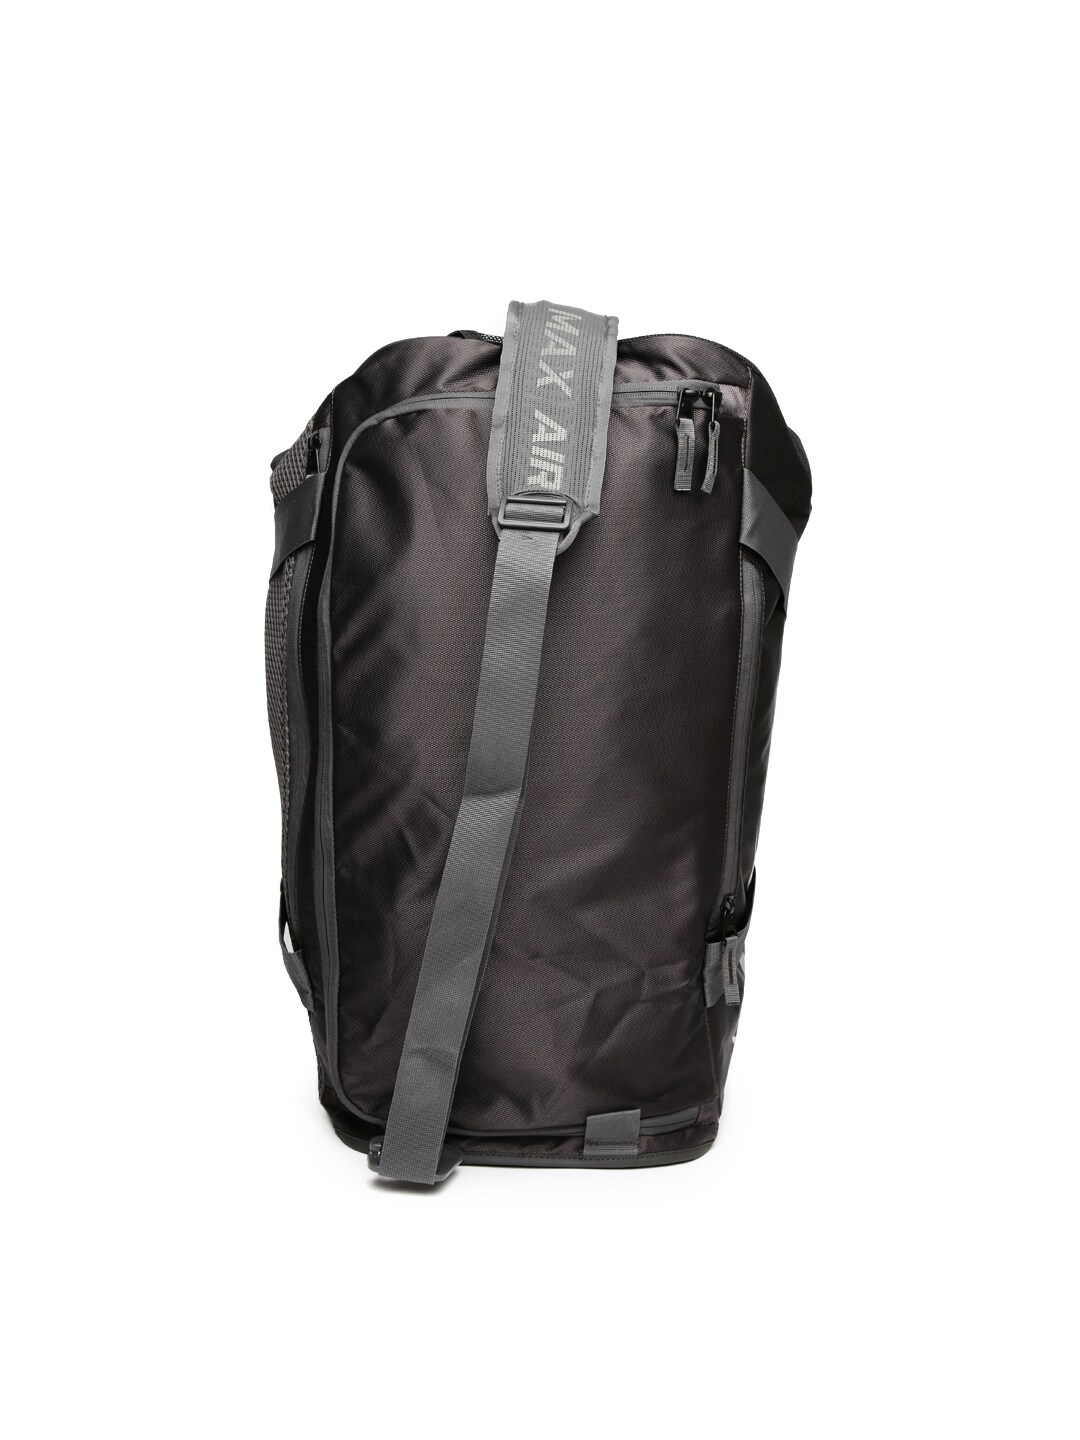 f7a16808f2 Buy Nike Duffle Bag Online India